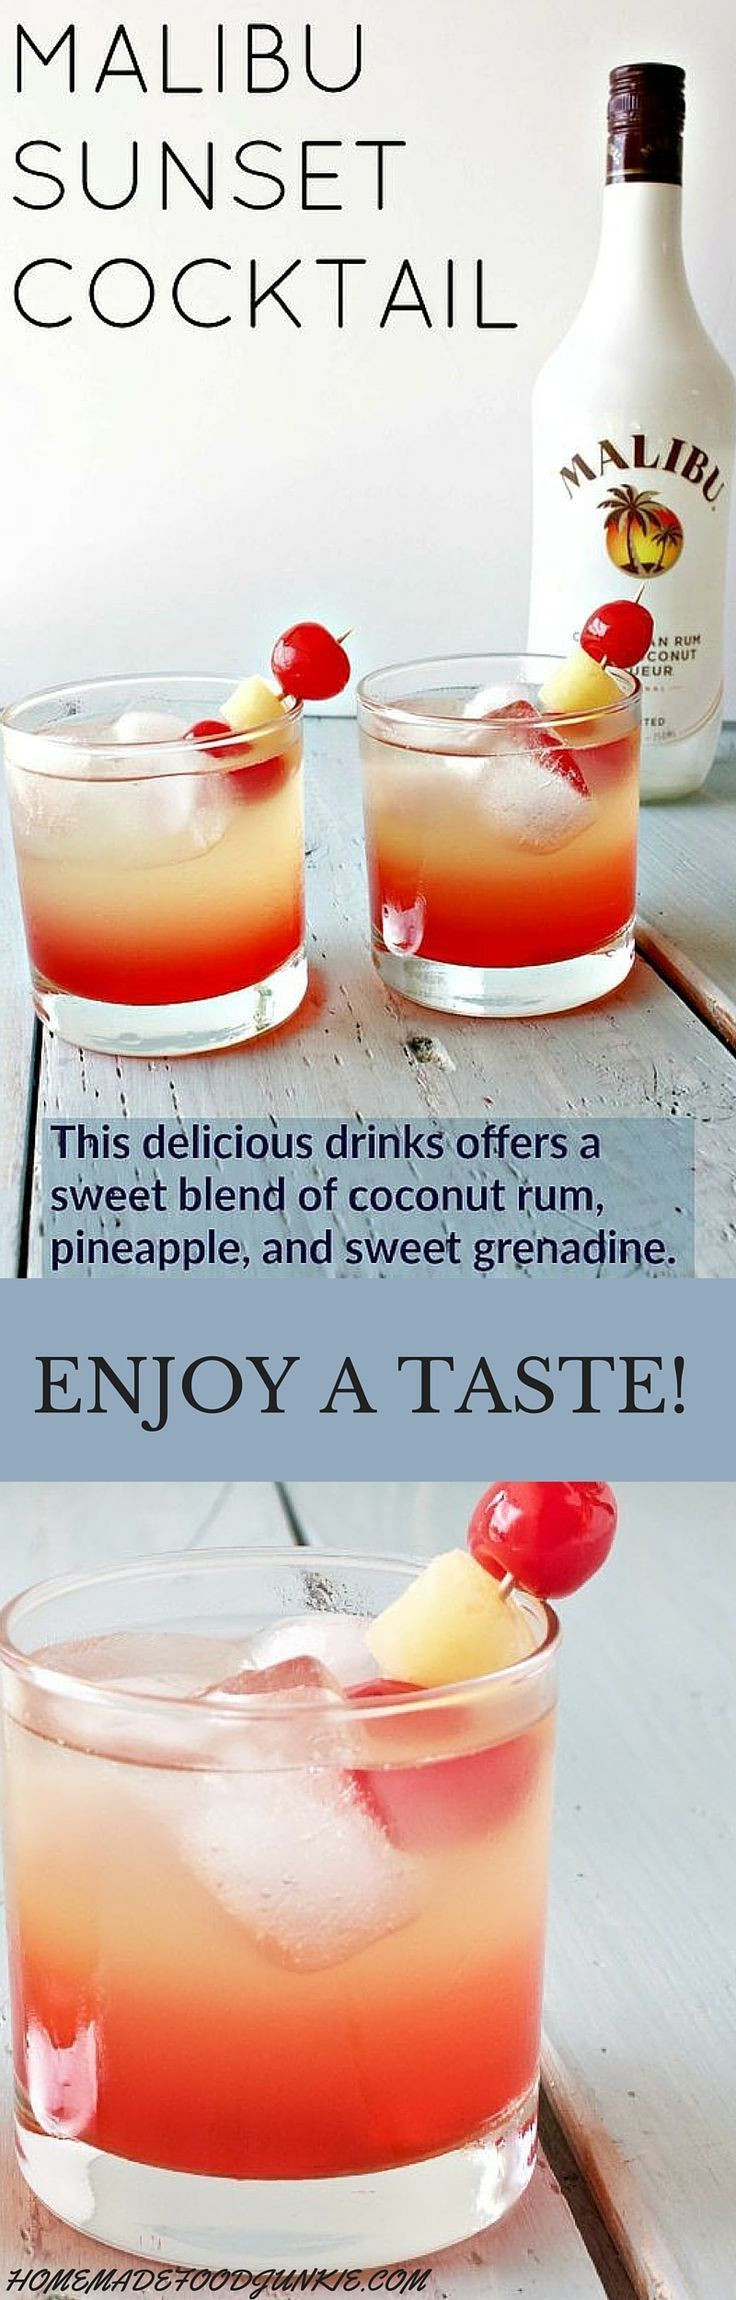 Coconut Rum Drinks  44 best images about Malibu on Pinterest